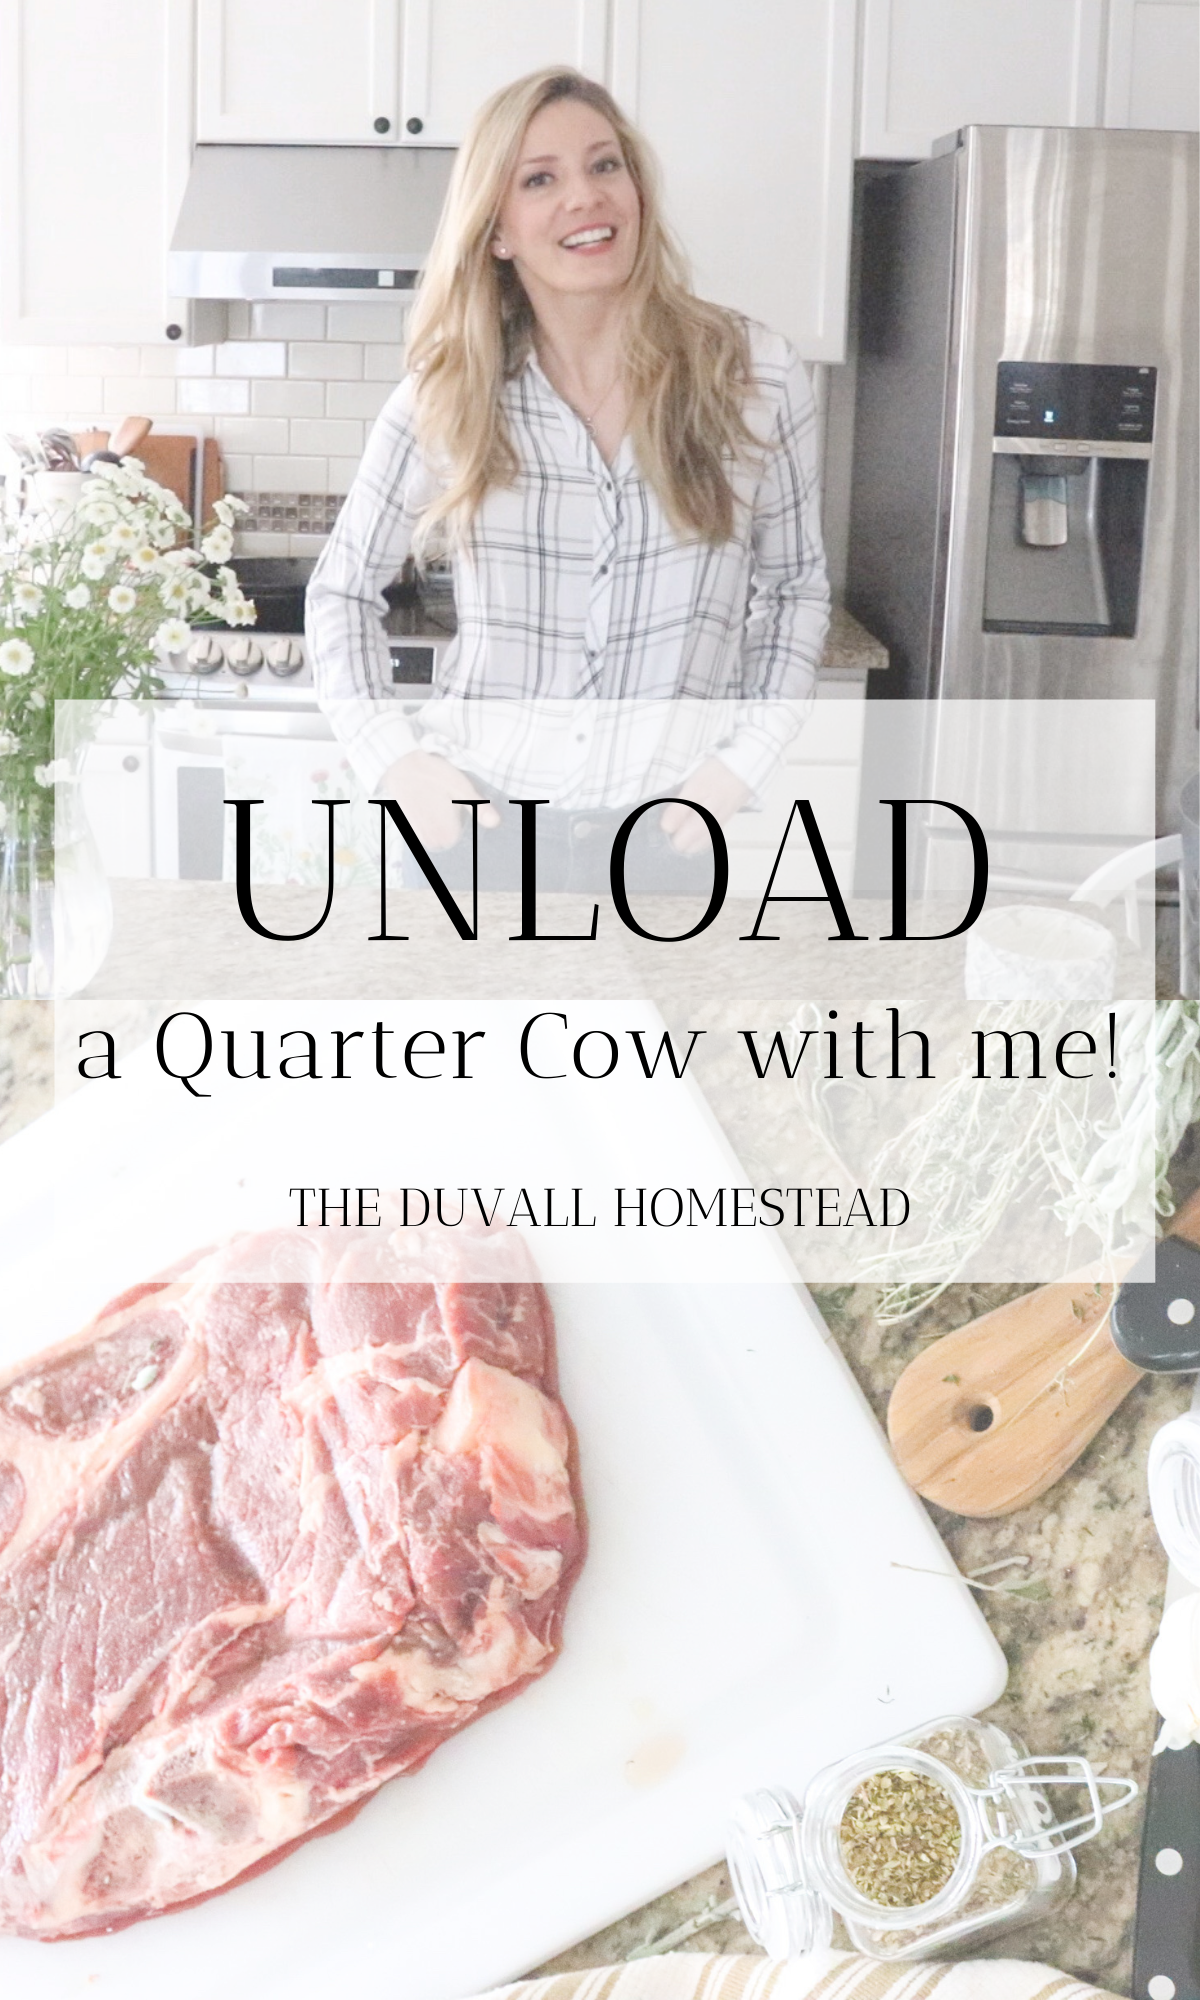 PT-Quarter-cow-unload-grass-fed-beef-farm-to-table-recipes-dinner-ideas-organic-lifestyle-yummy-food-foodie-recipes-easy-simple-beef